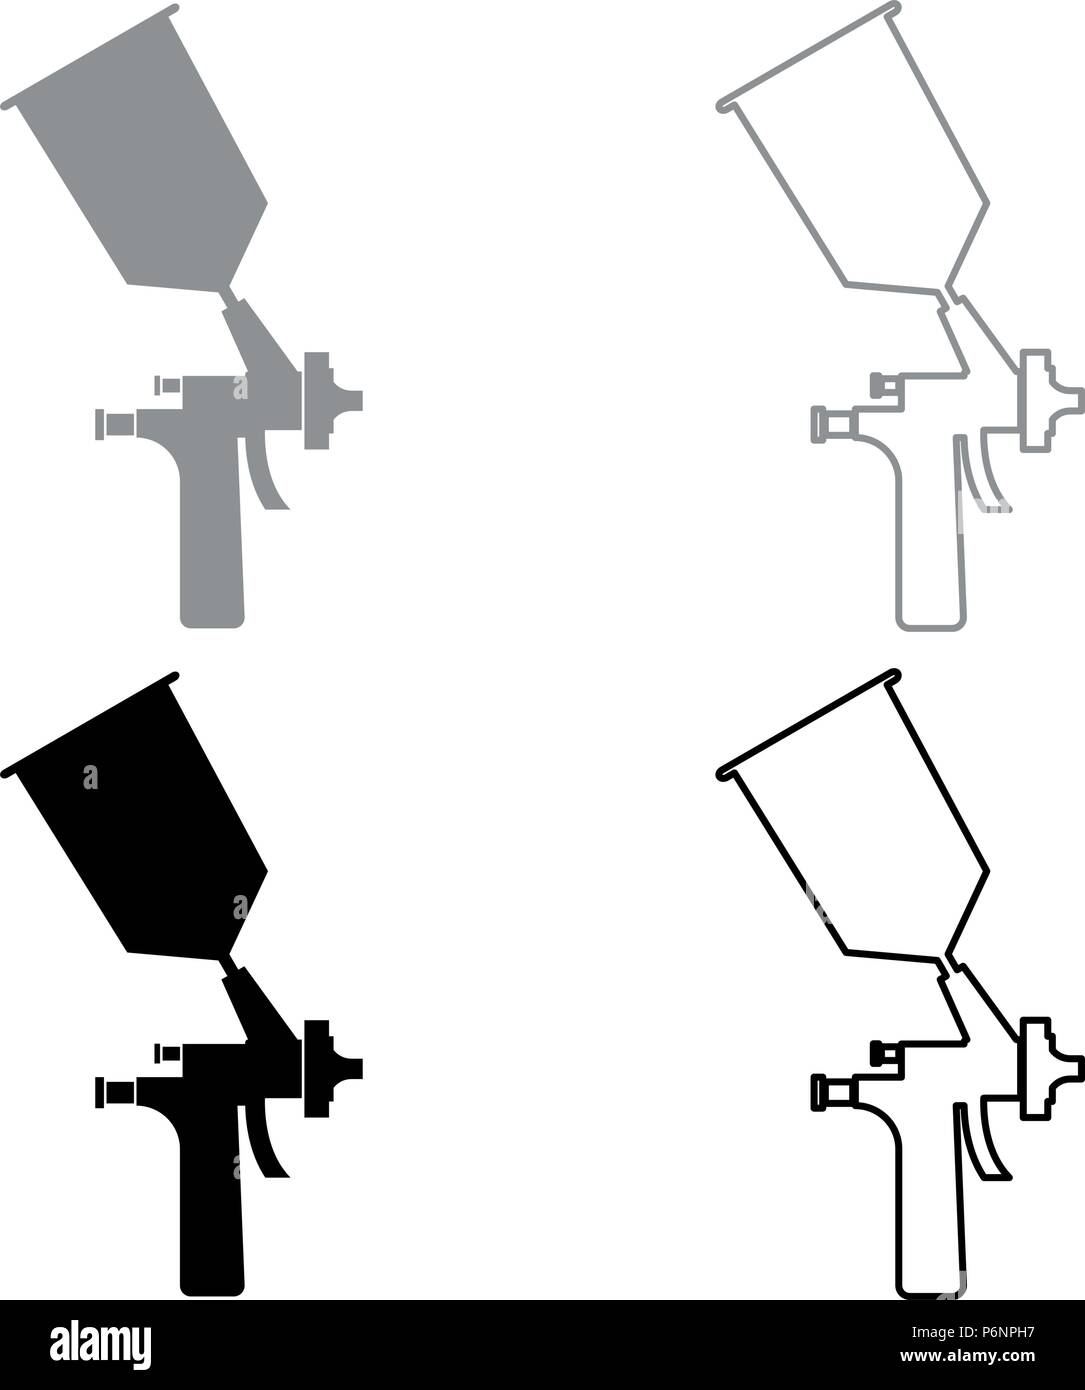 Sprayer paint icon set grey black color illustration flat style simple image - Stock Image